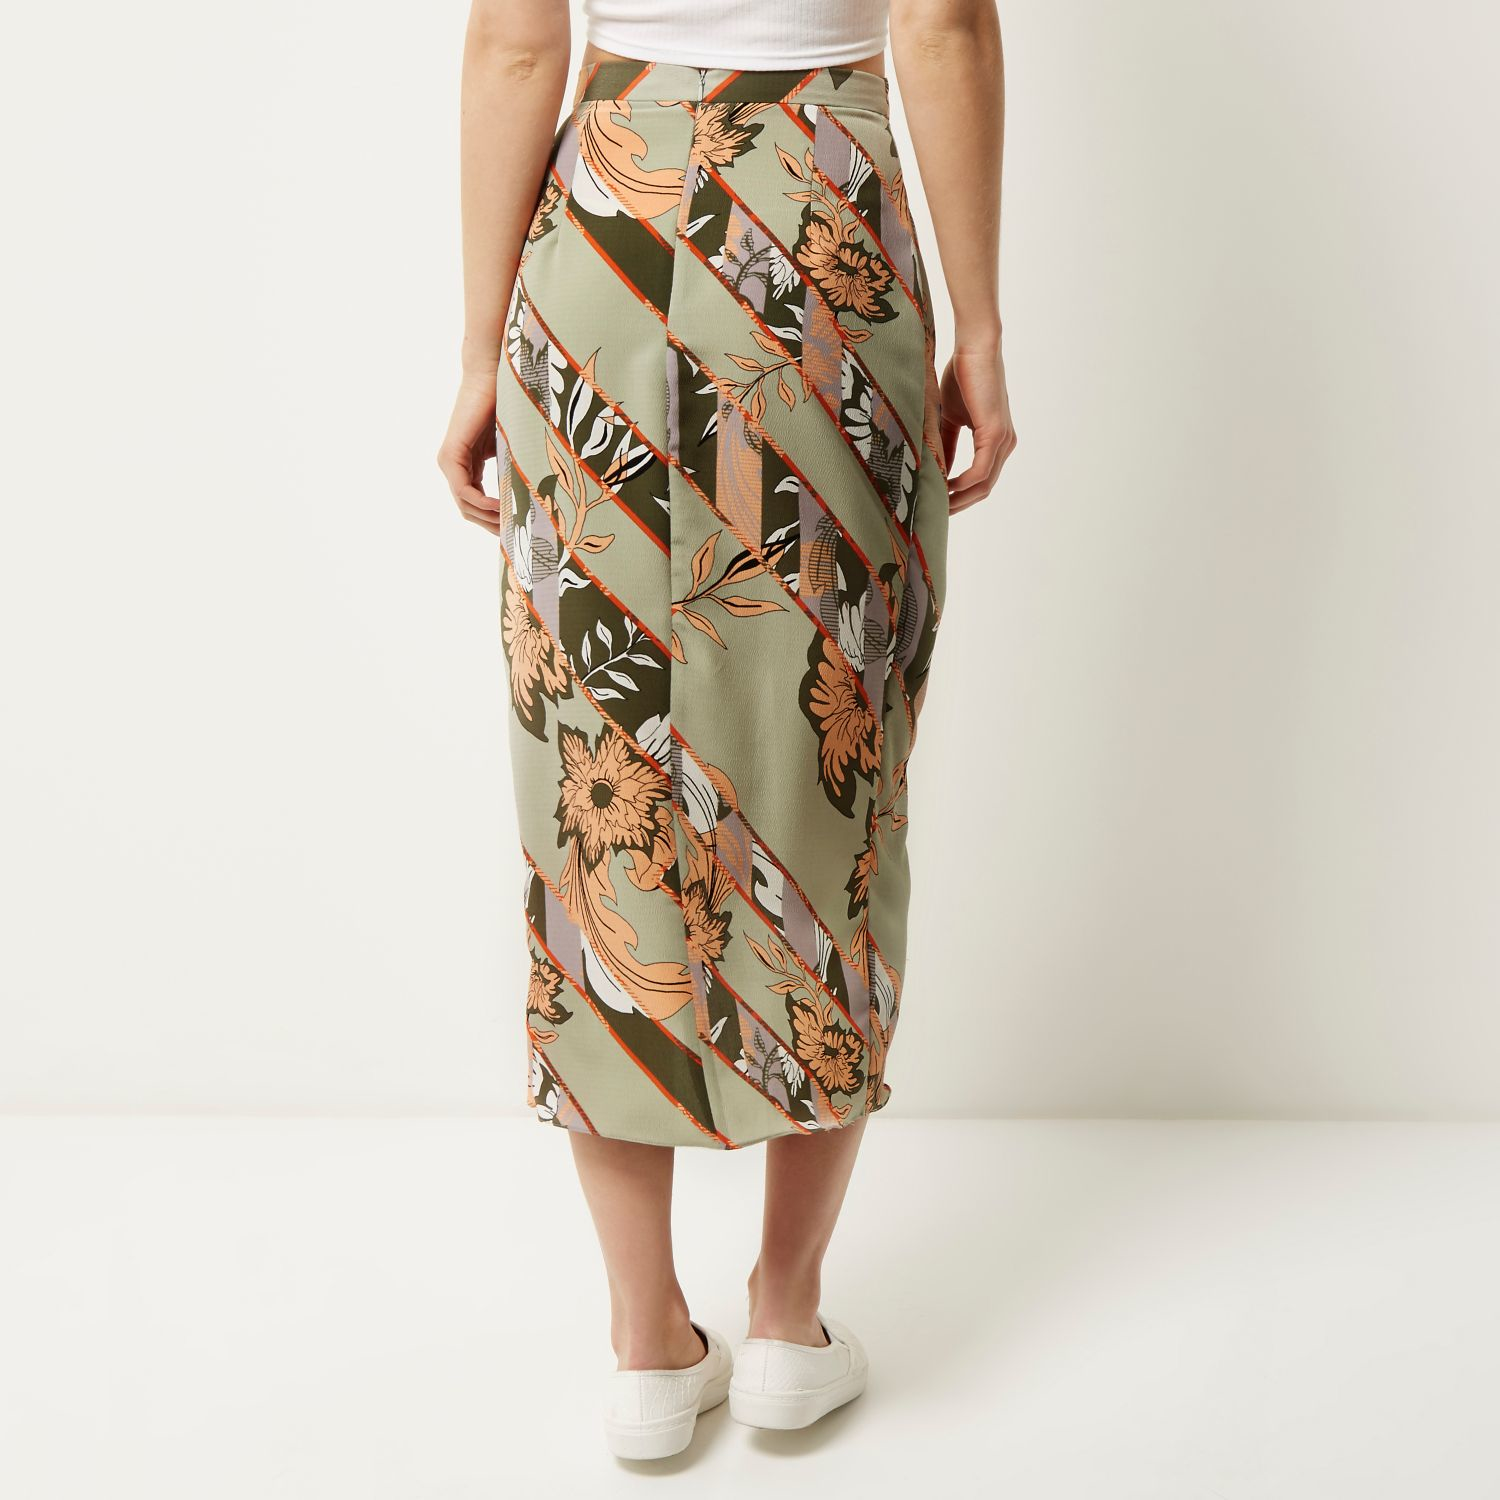 0a01a4162c River Island Grey Floral Print Wrap Midi Skirt in Gray - Lyst